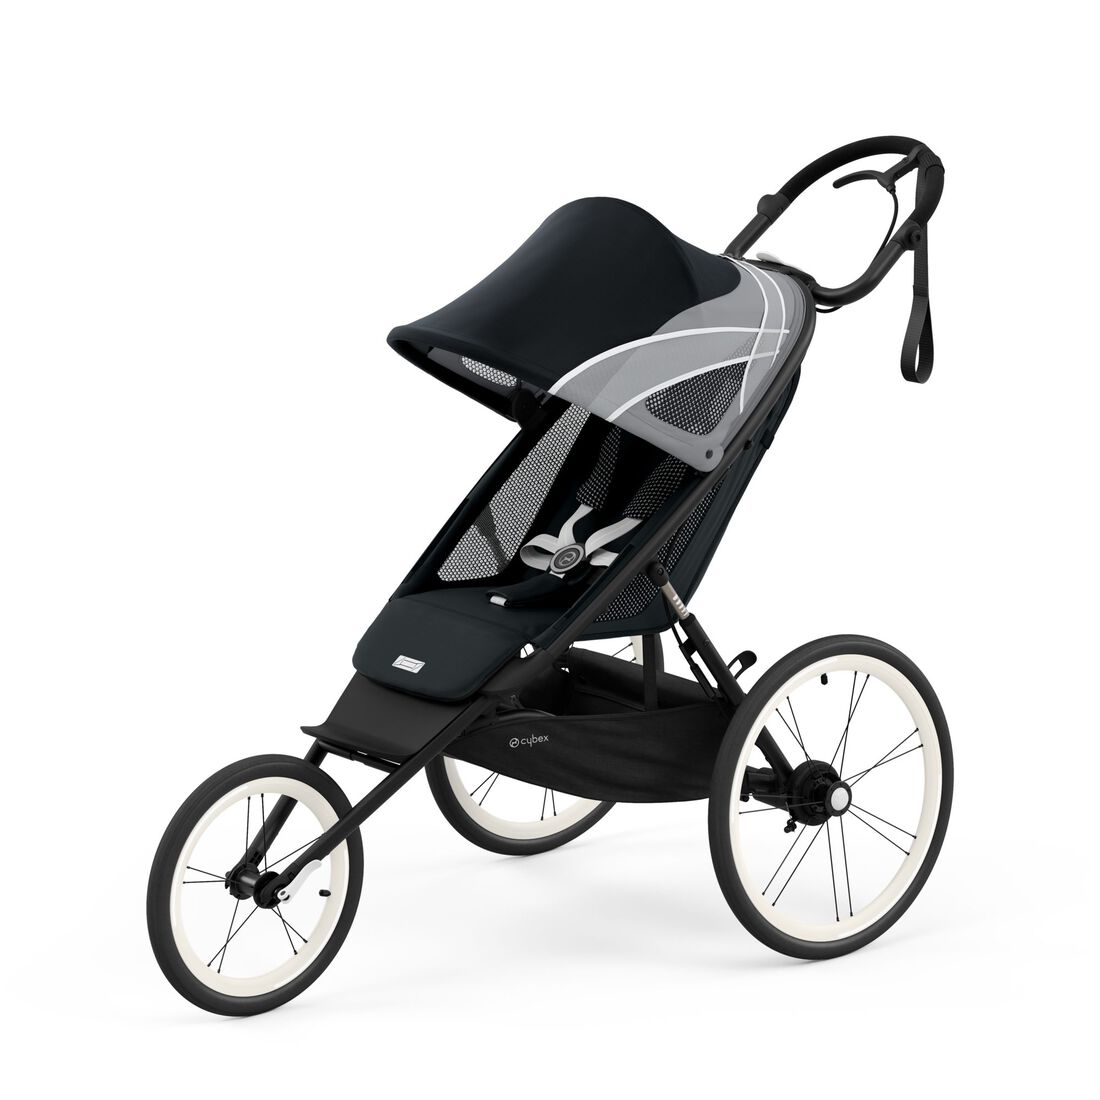 CYBEX Avi Seat Pack - All Black in All Black large image number 2